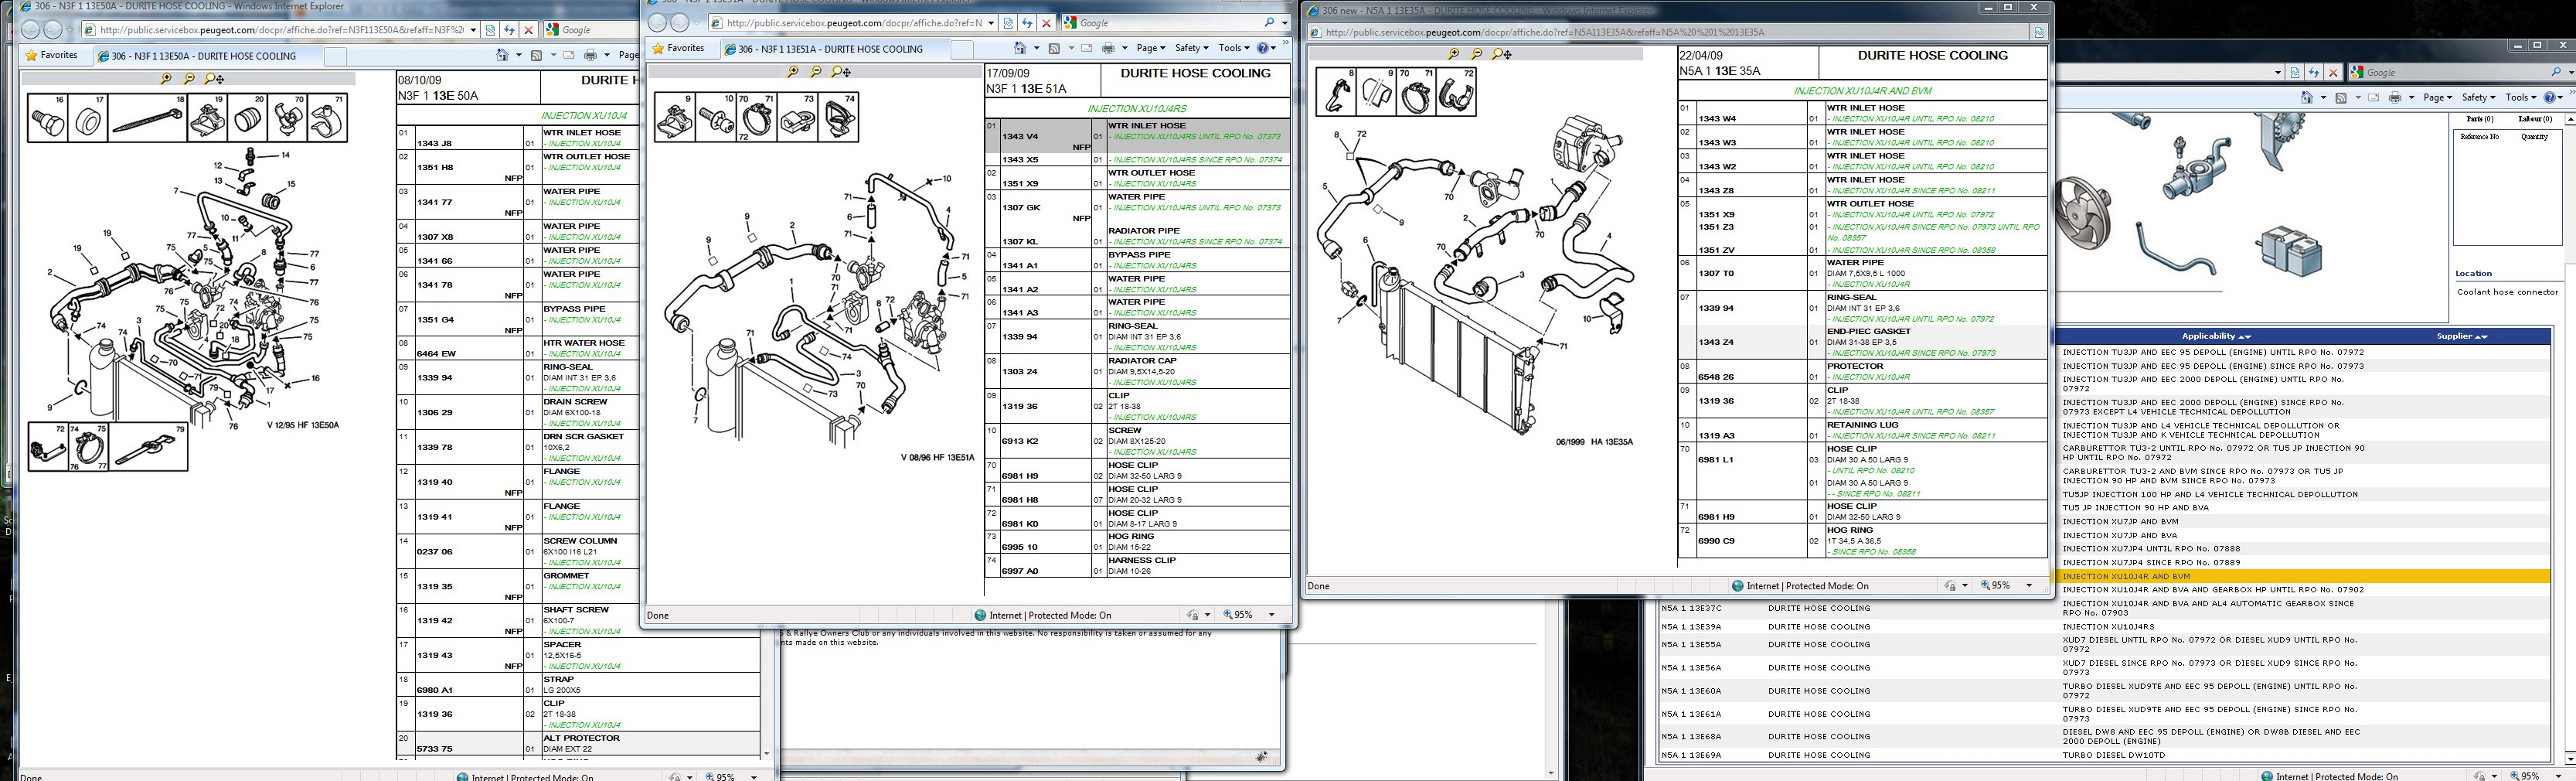 Peugeot Engine Cooling Diagram Wiring Library Diagrams What Do You Think Im Making These Up Its Comes